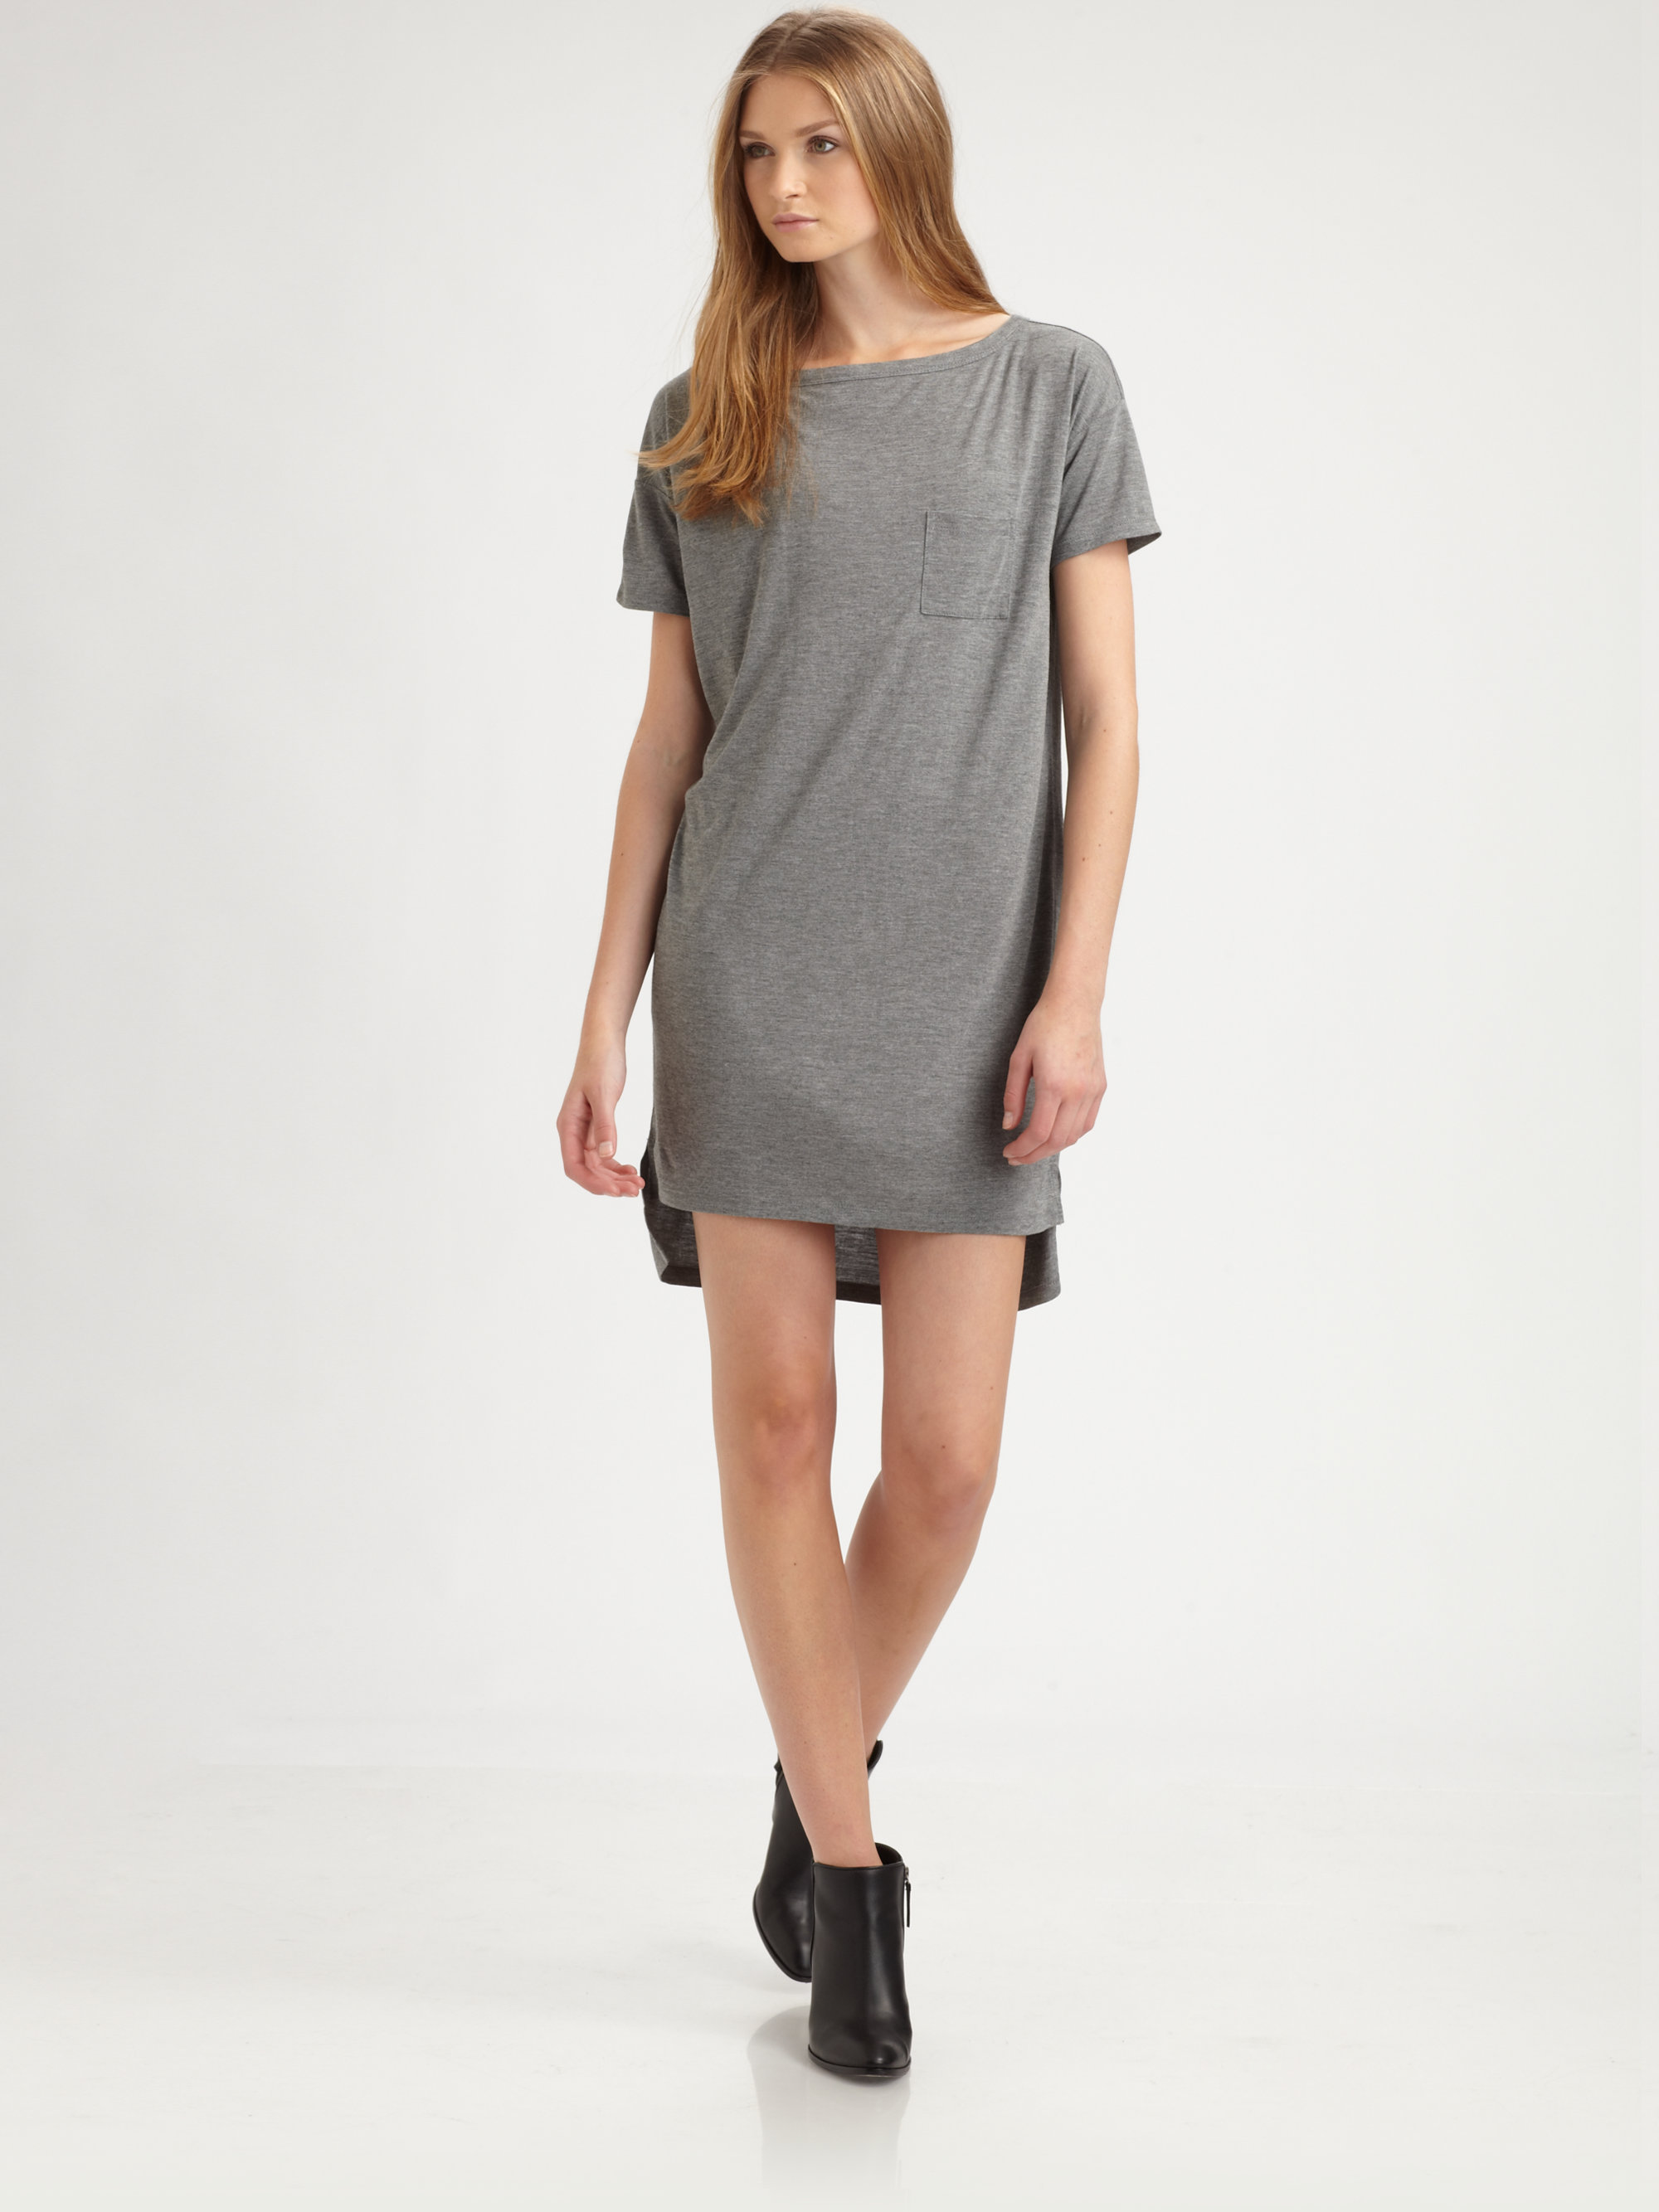 T by alexander wang classic boatneck dress in gray lyst for Alexander wang wedding dresses